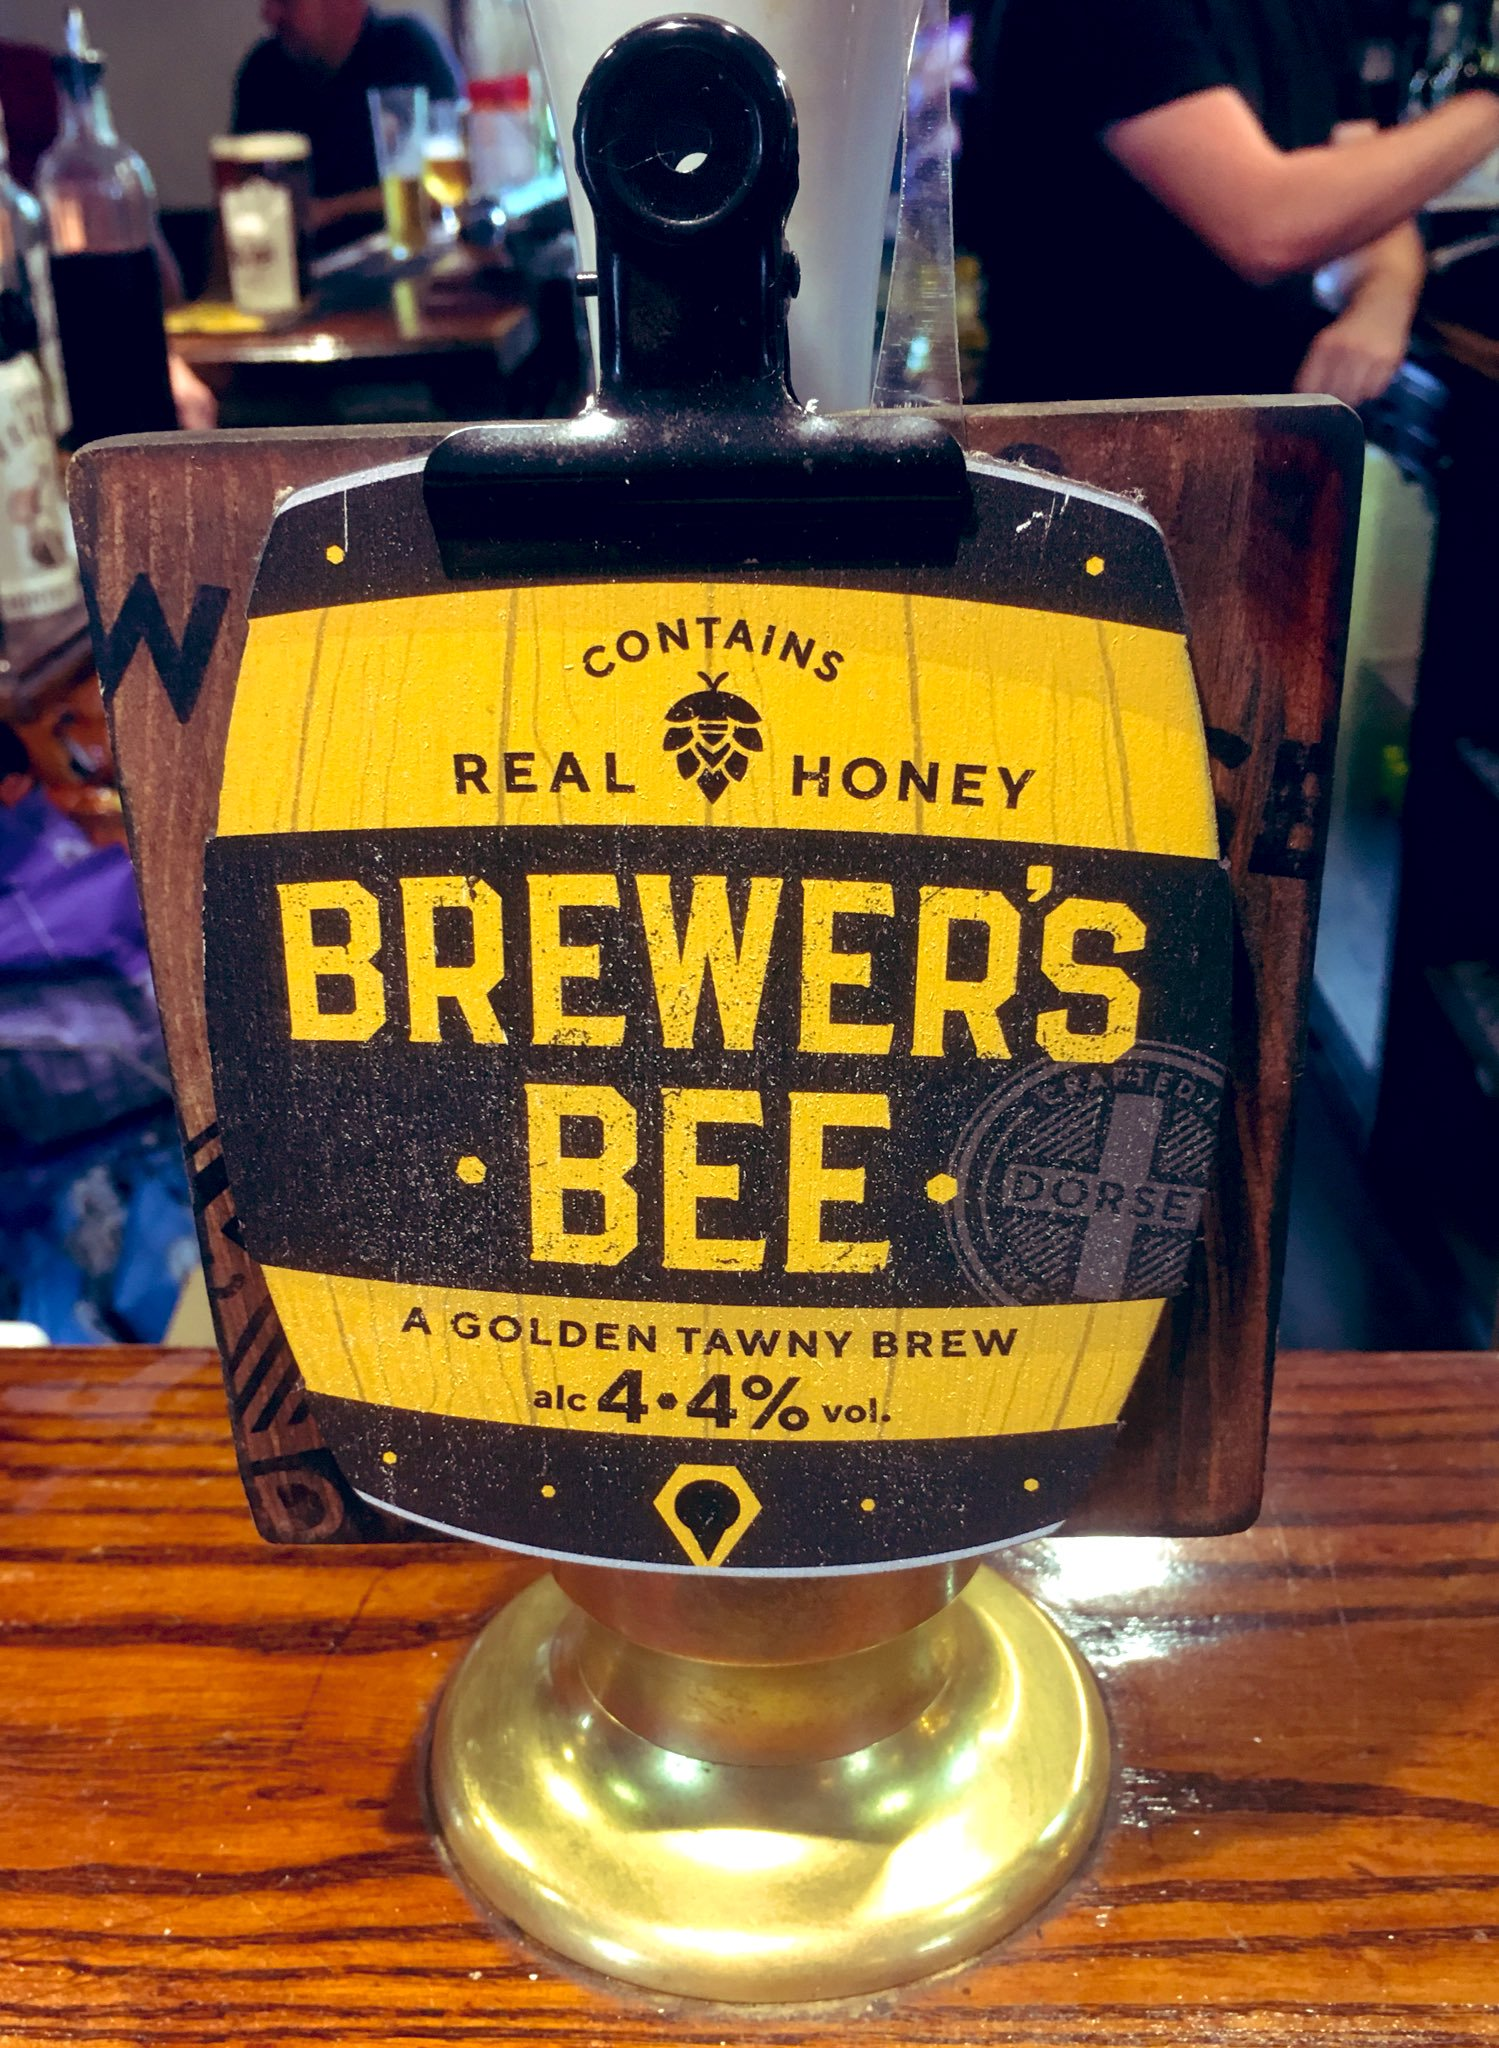 230: Brewer's Bee